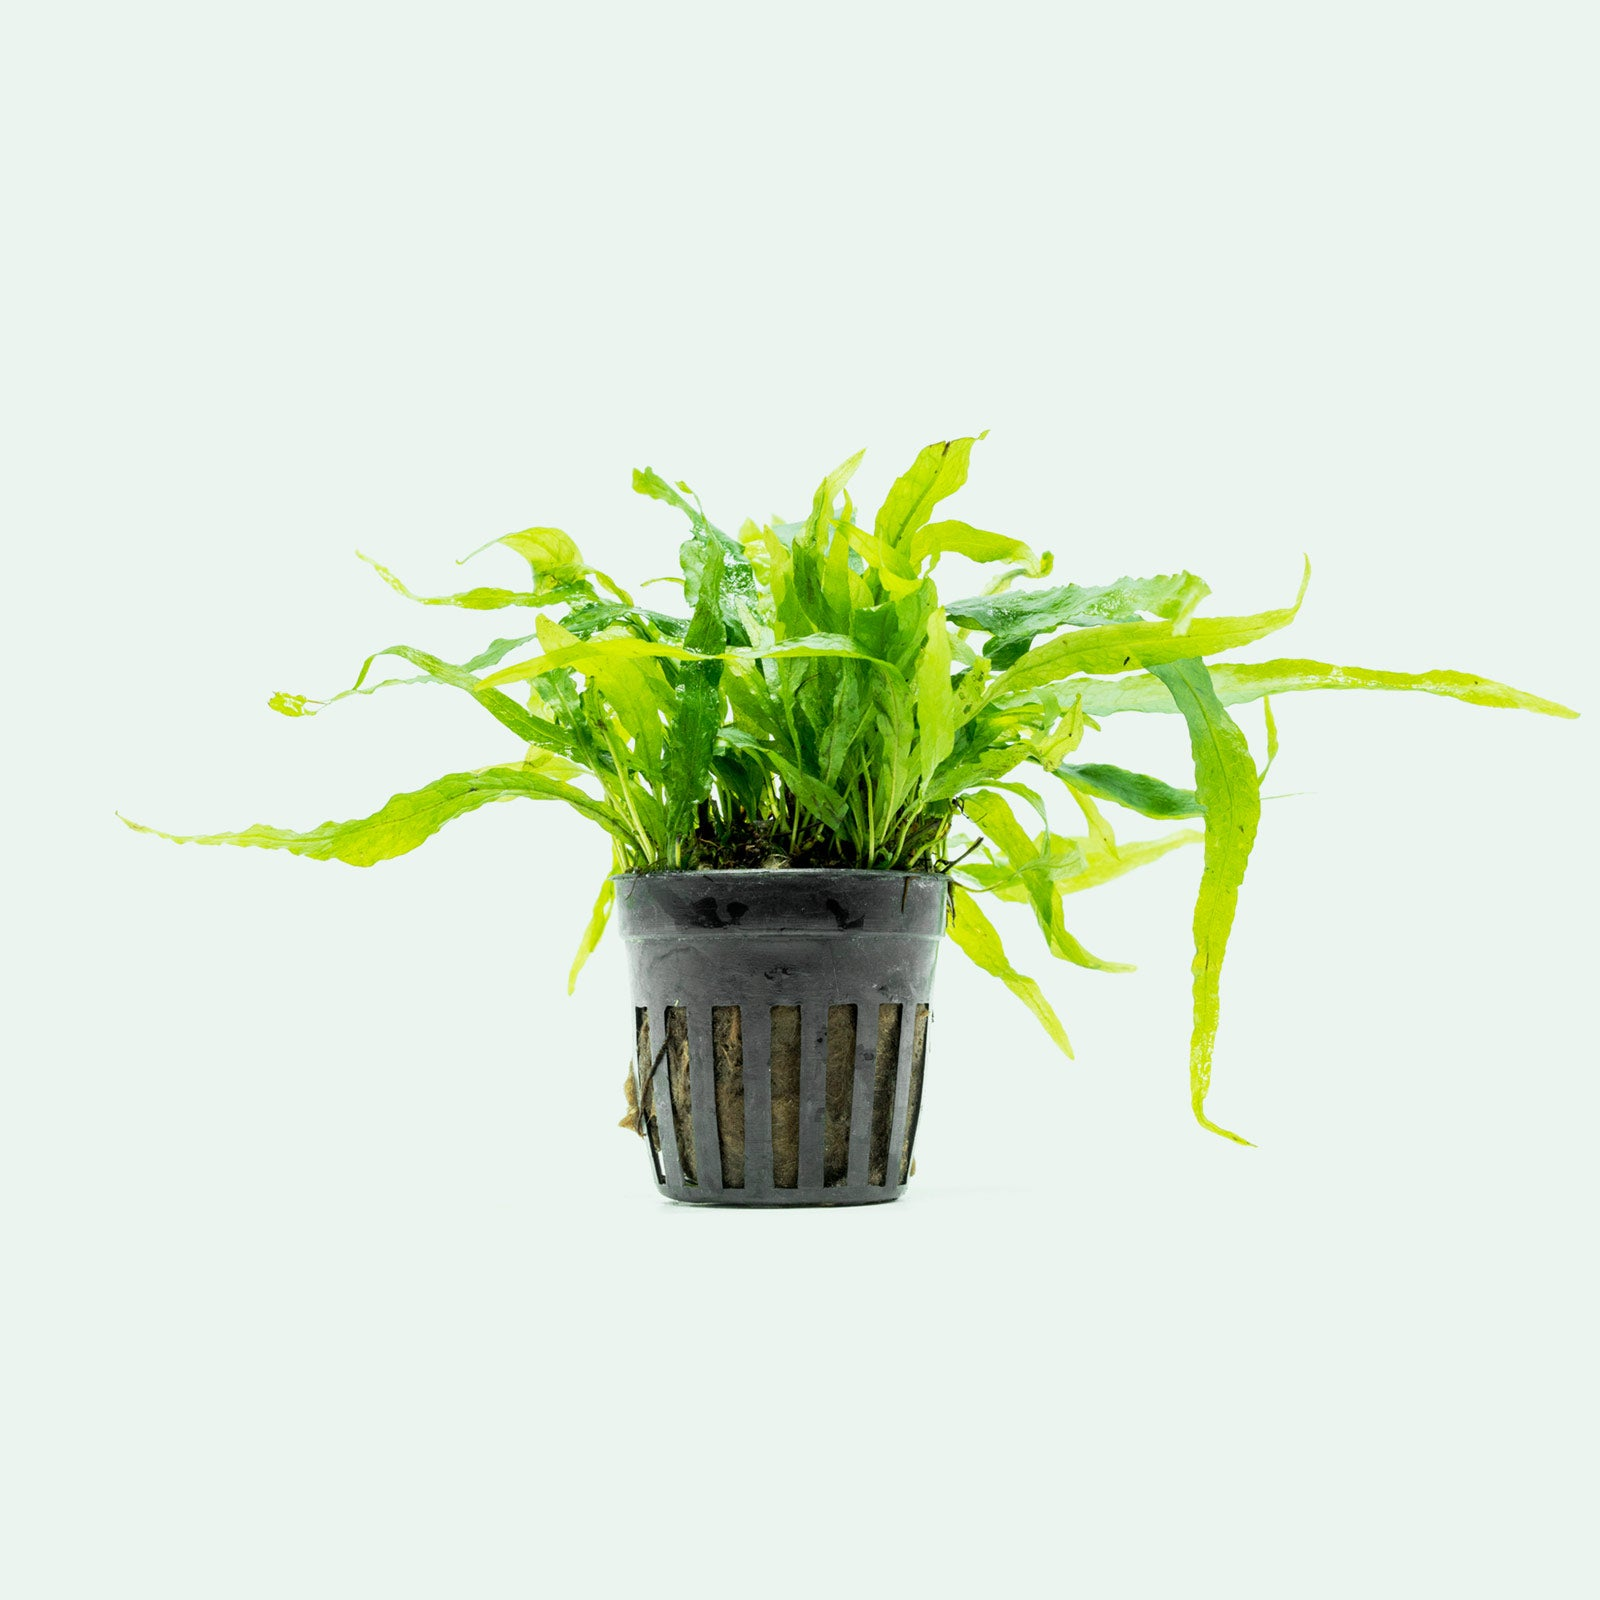 Shop Microsorum Pteropus Narrow Leaf Mini Aquatic Plants - Glass Aqua